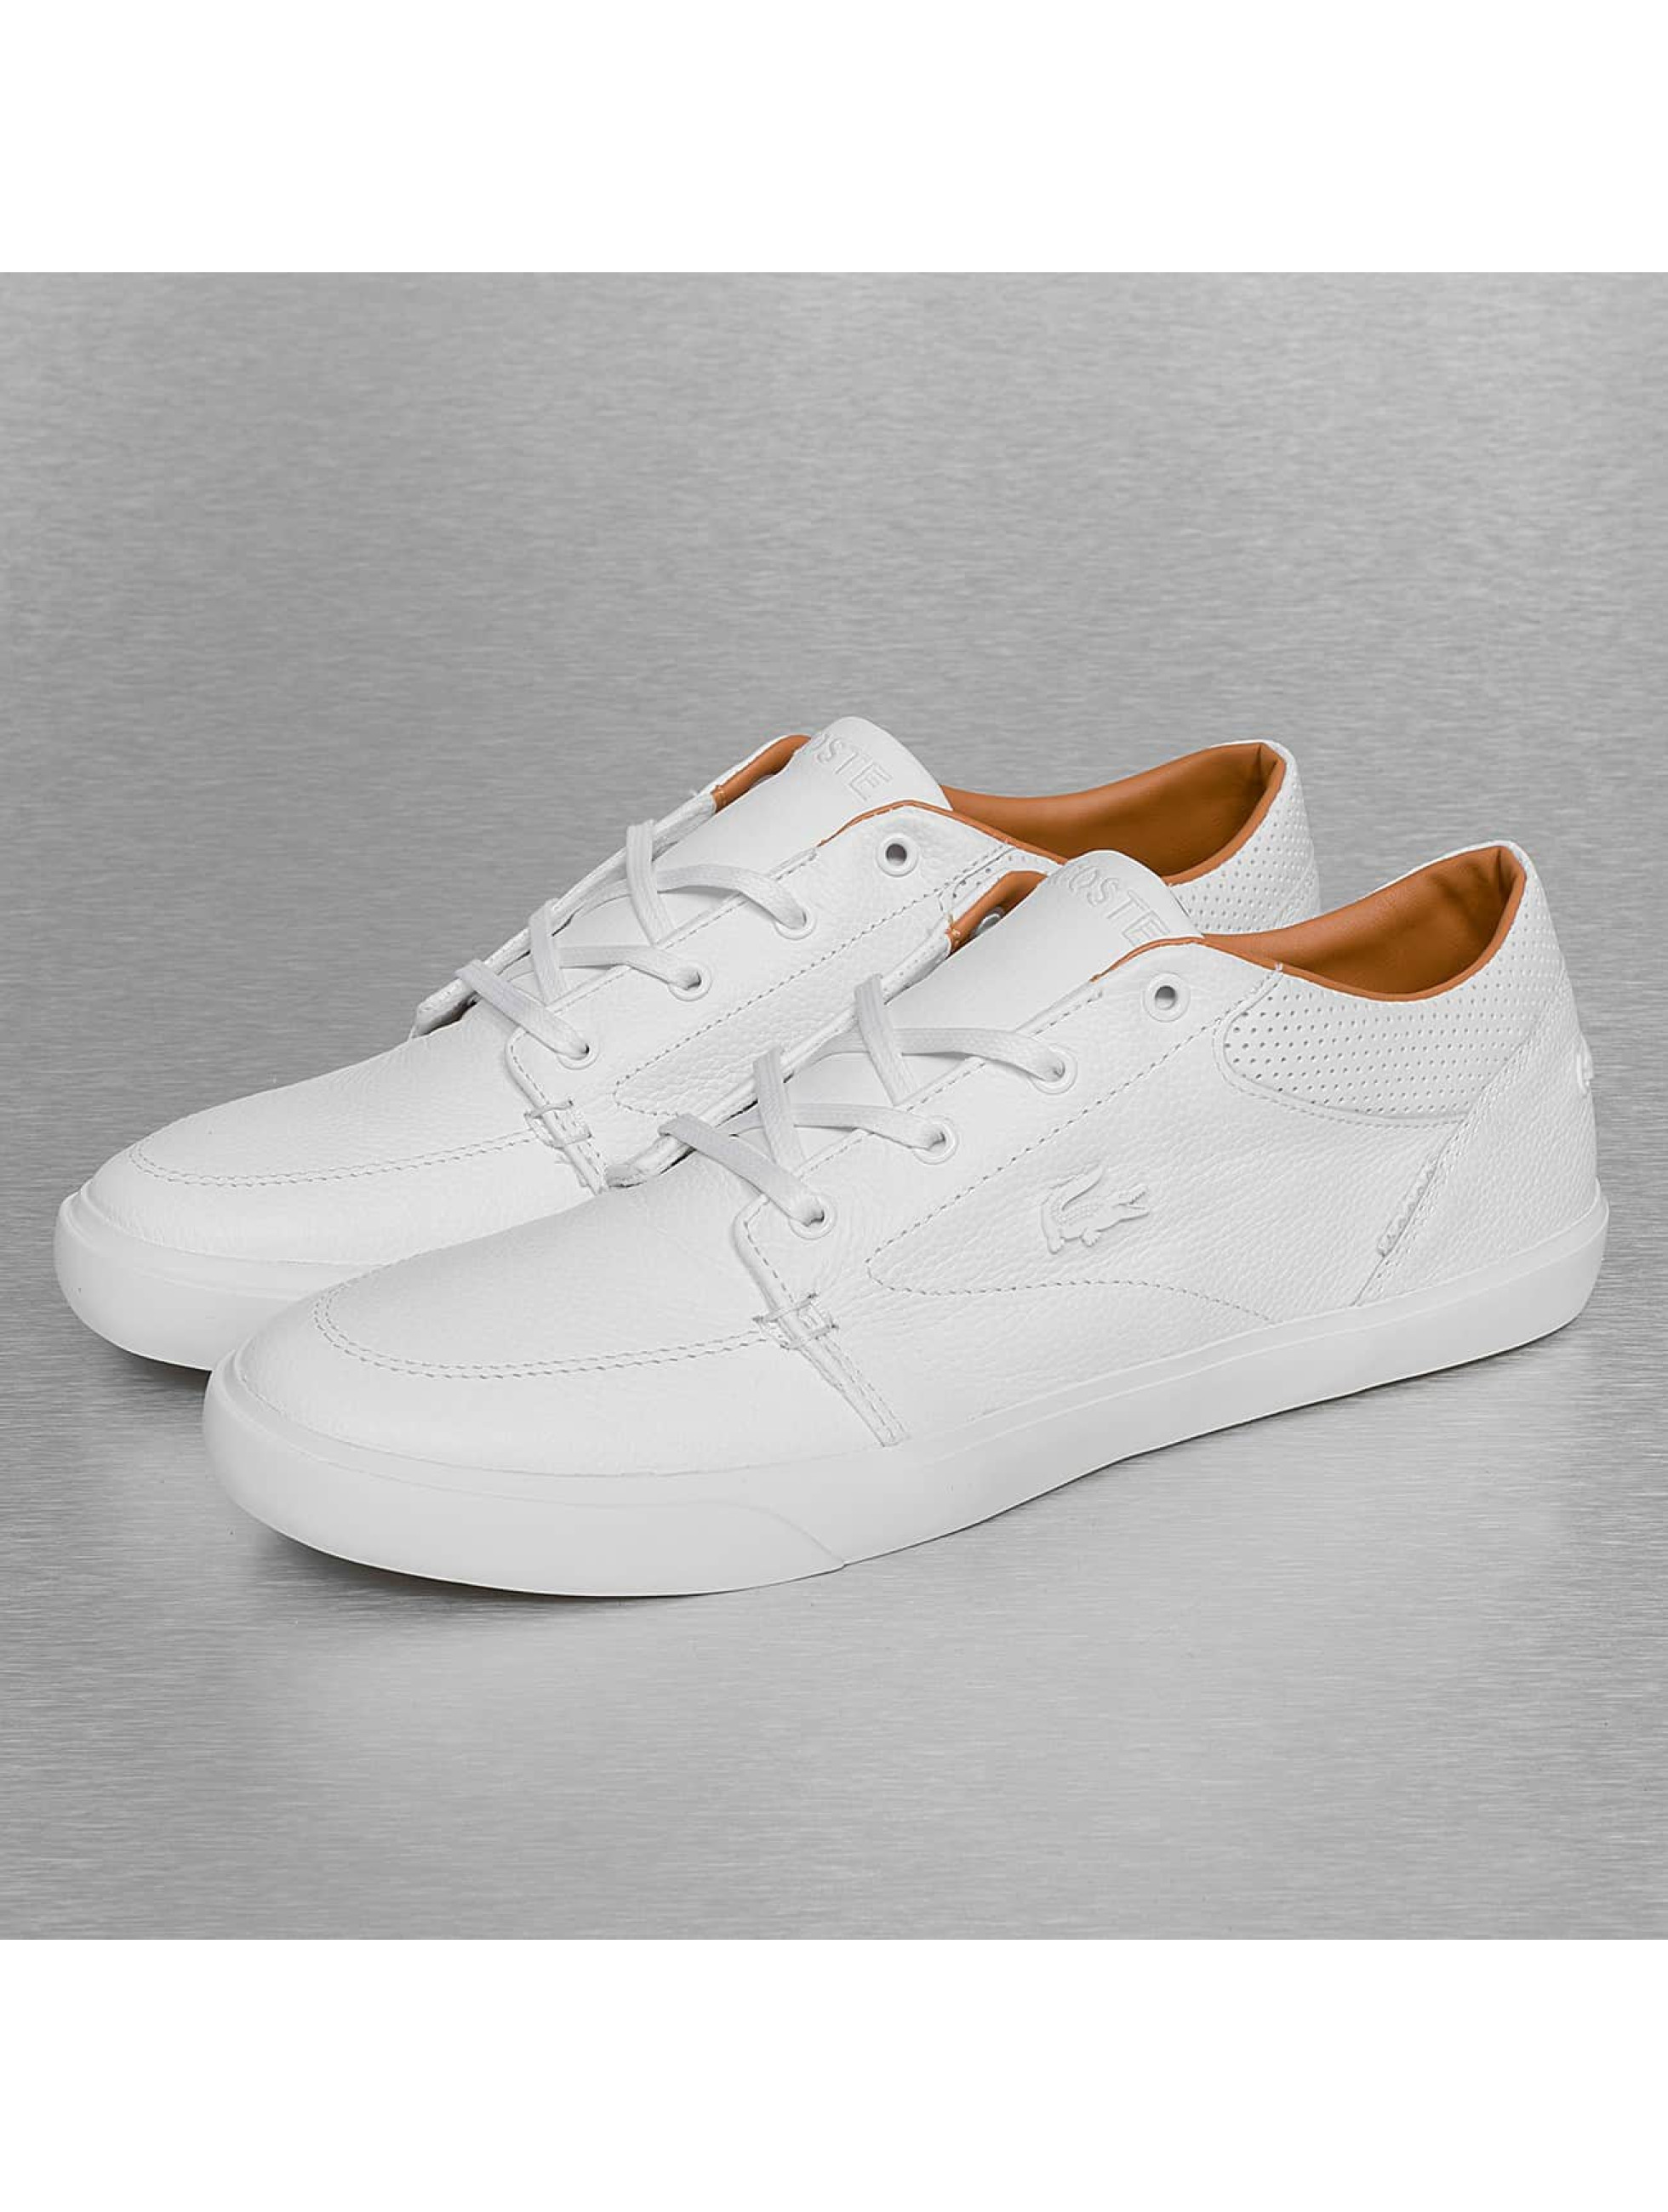 Lacoste Sneakers Dames Wit